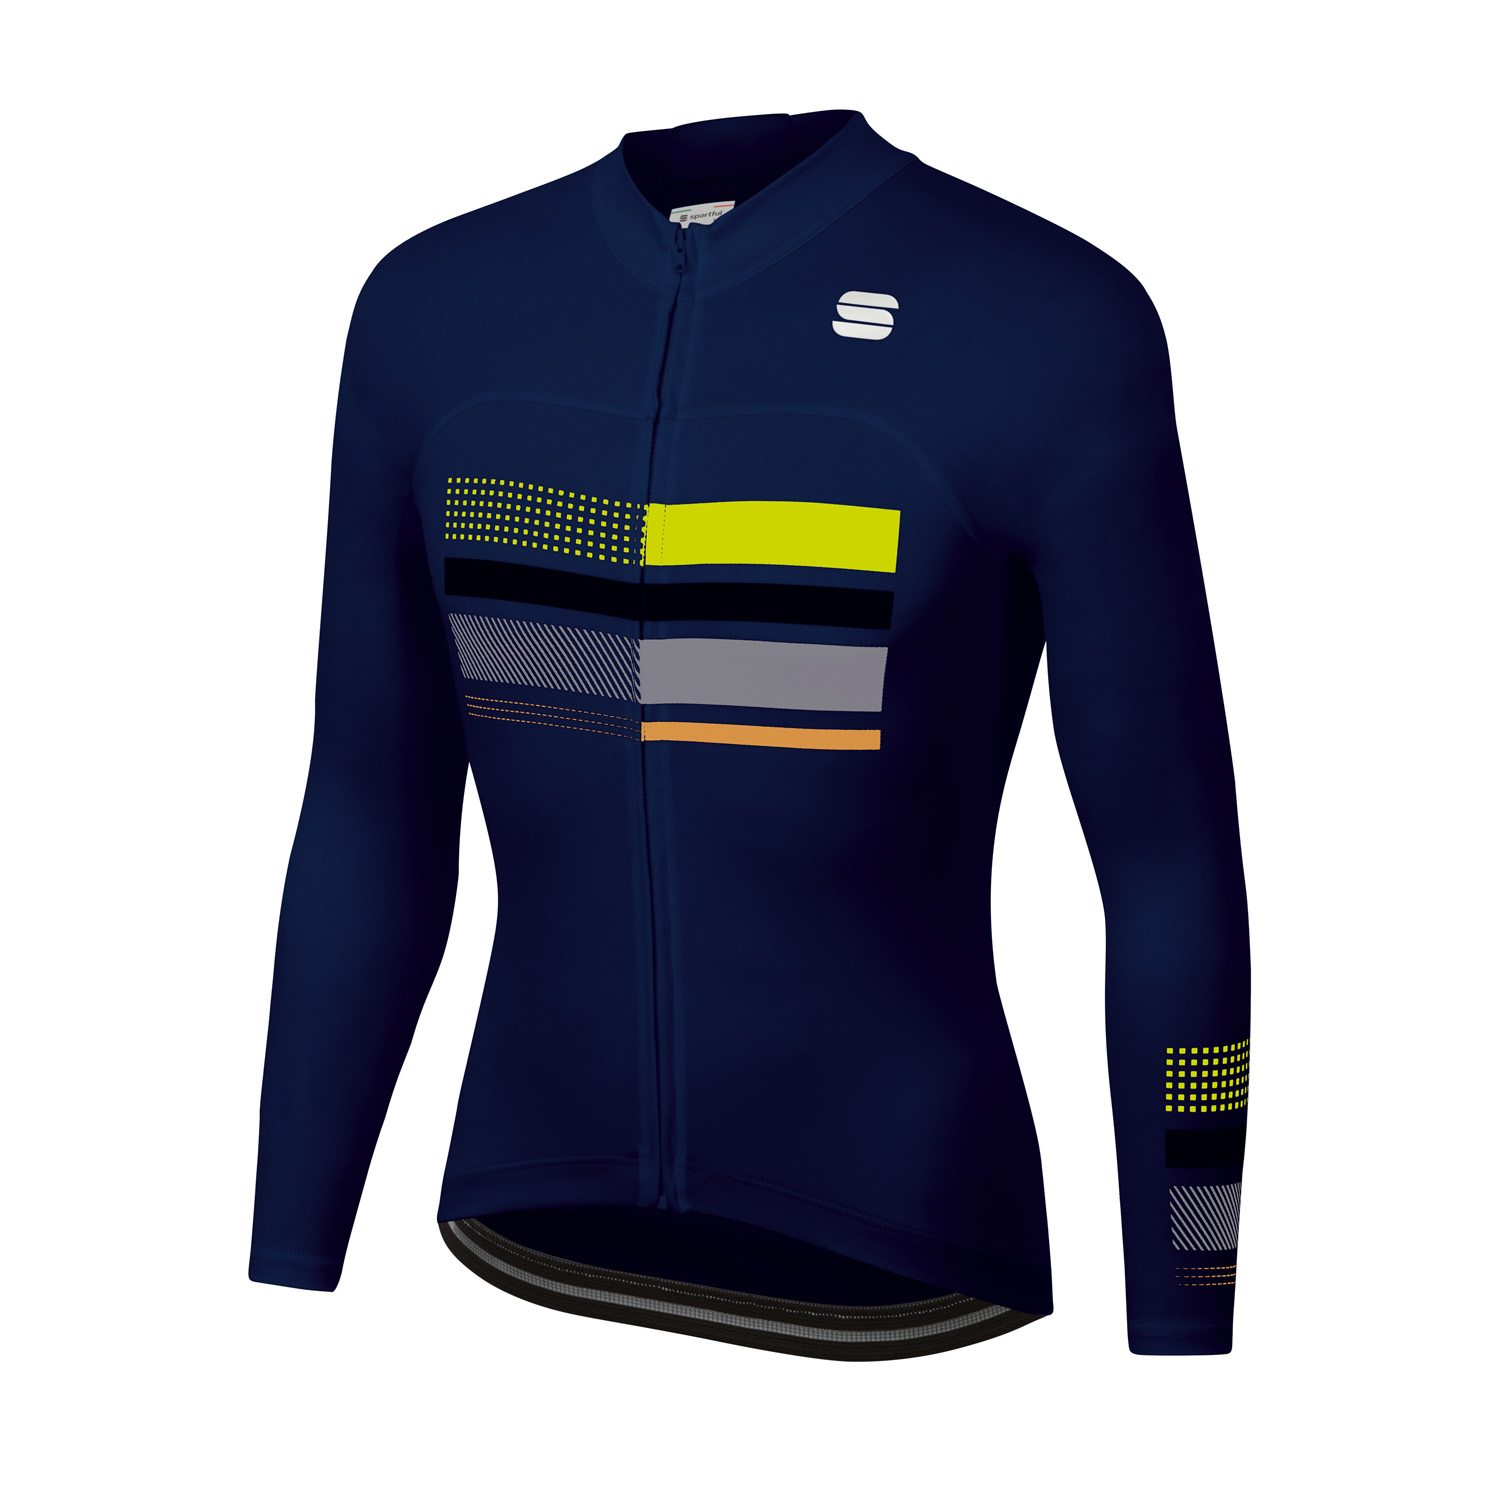 | Sportful Fietsshirt lange mouwen Heren Blauw - WIRE THERMAL JERSEY BLUE